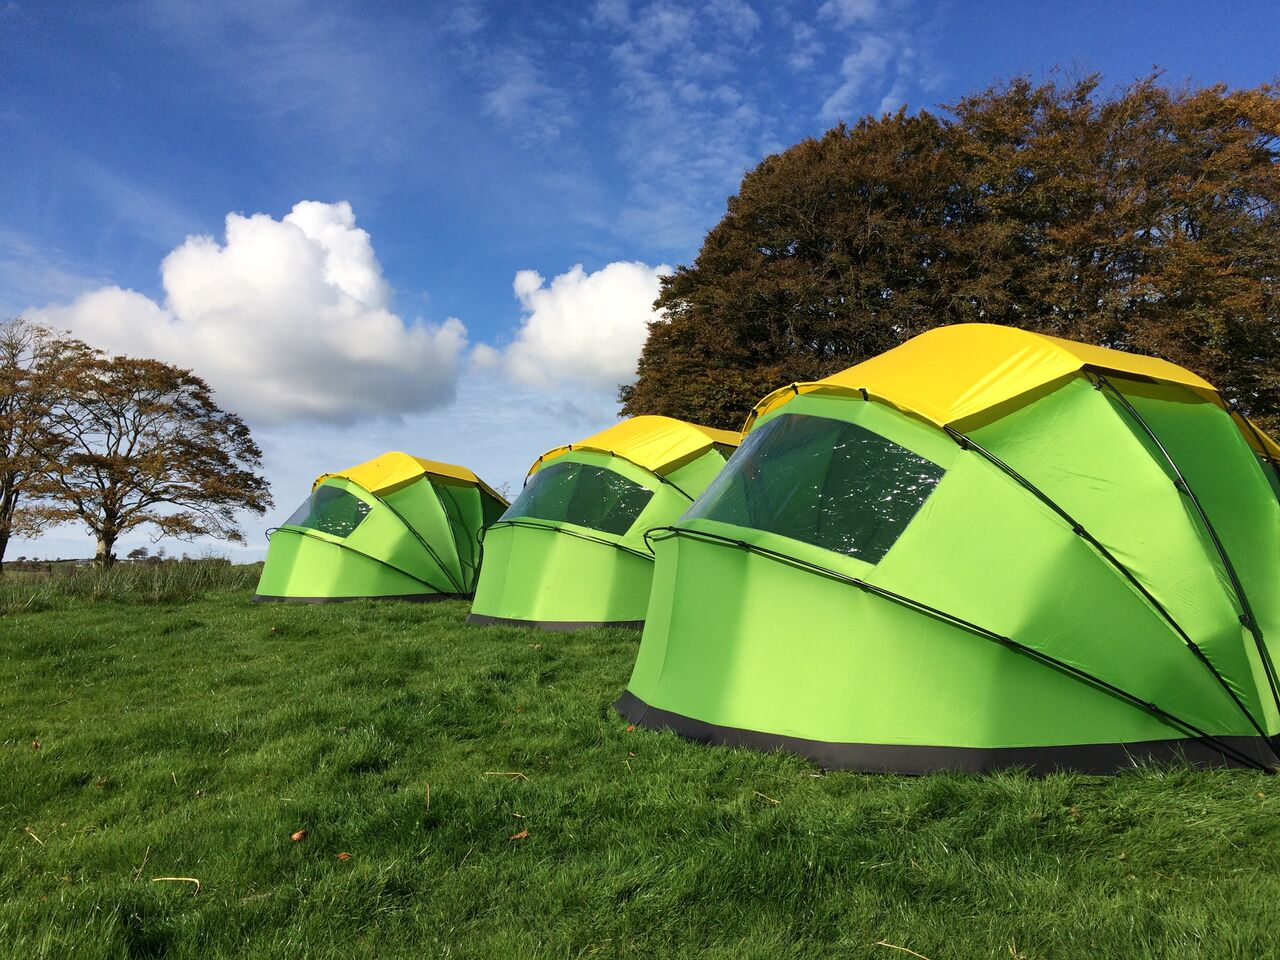 Meet The Nano 2 A Clamshell Dome Tent That Opens And